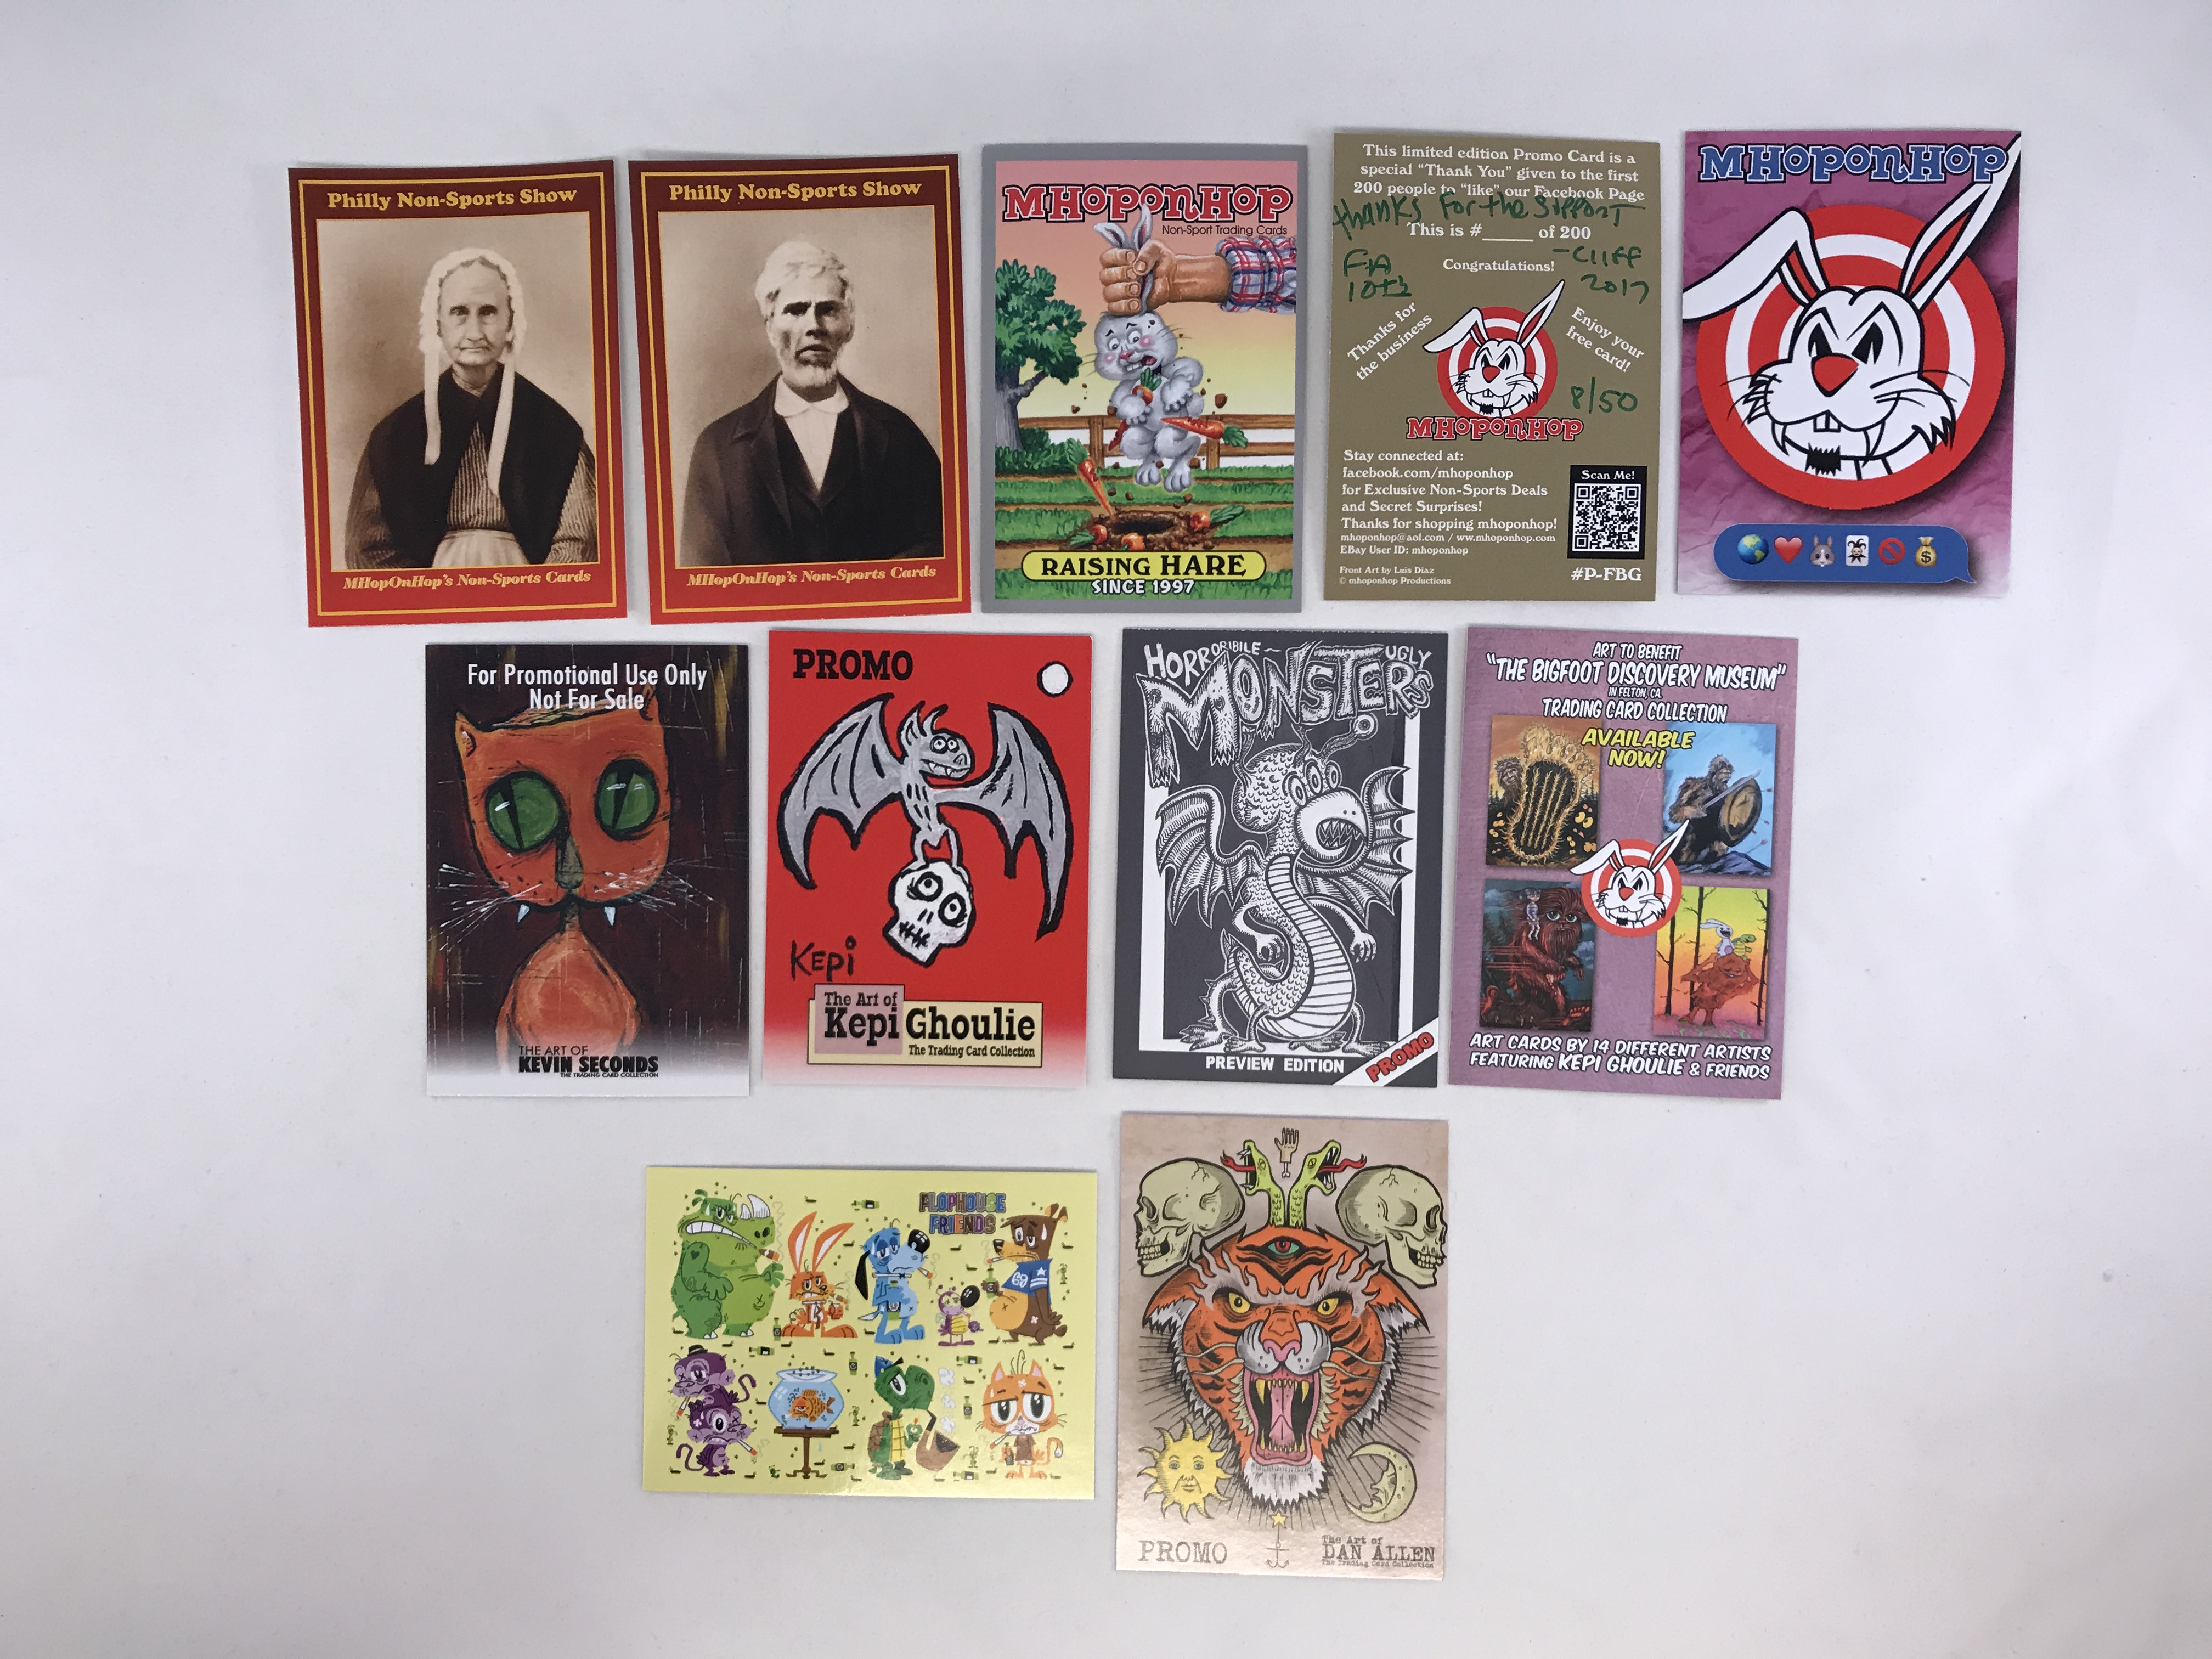 the complete featured artist promo card collection